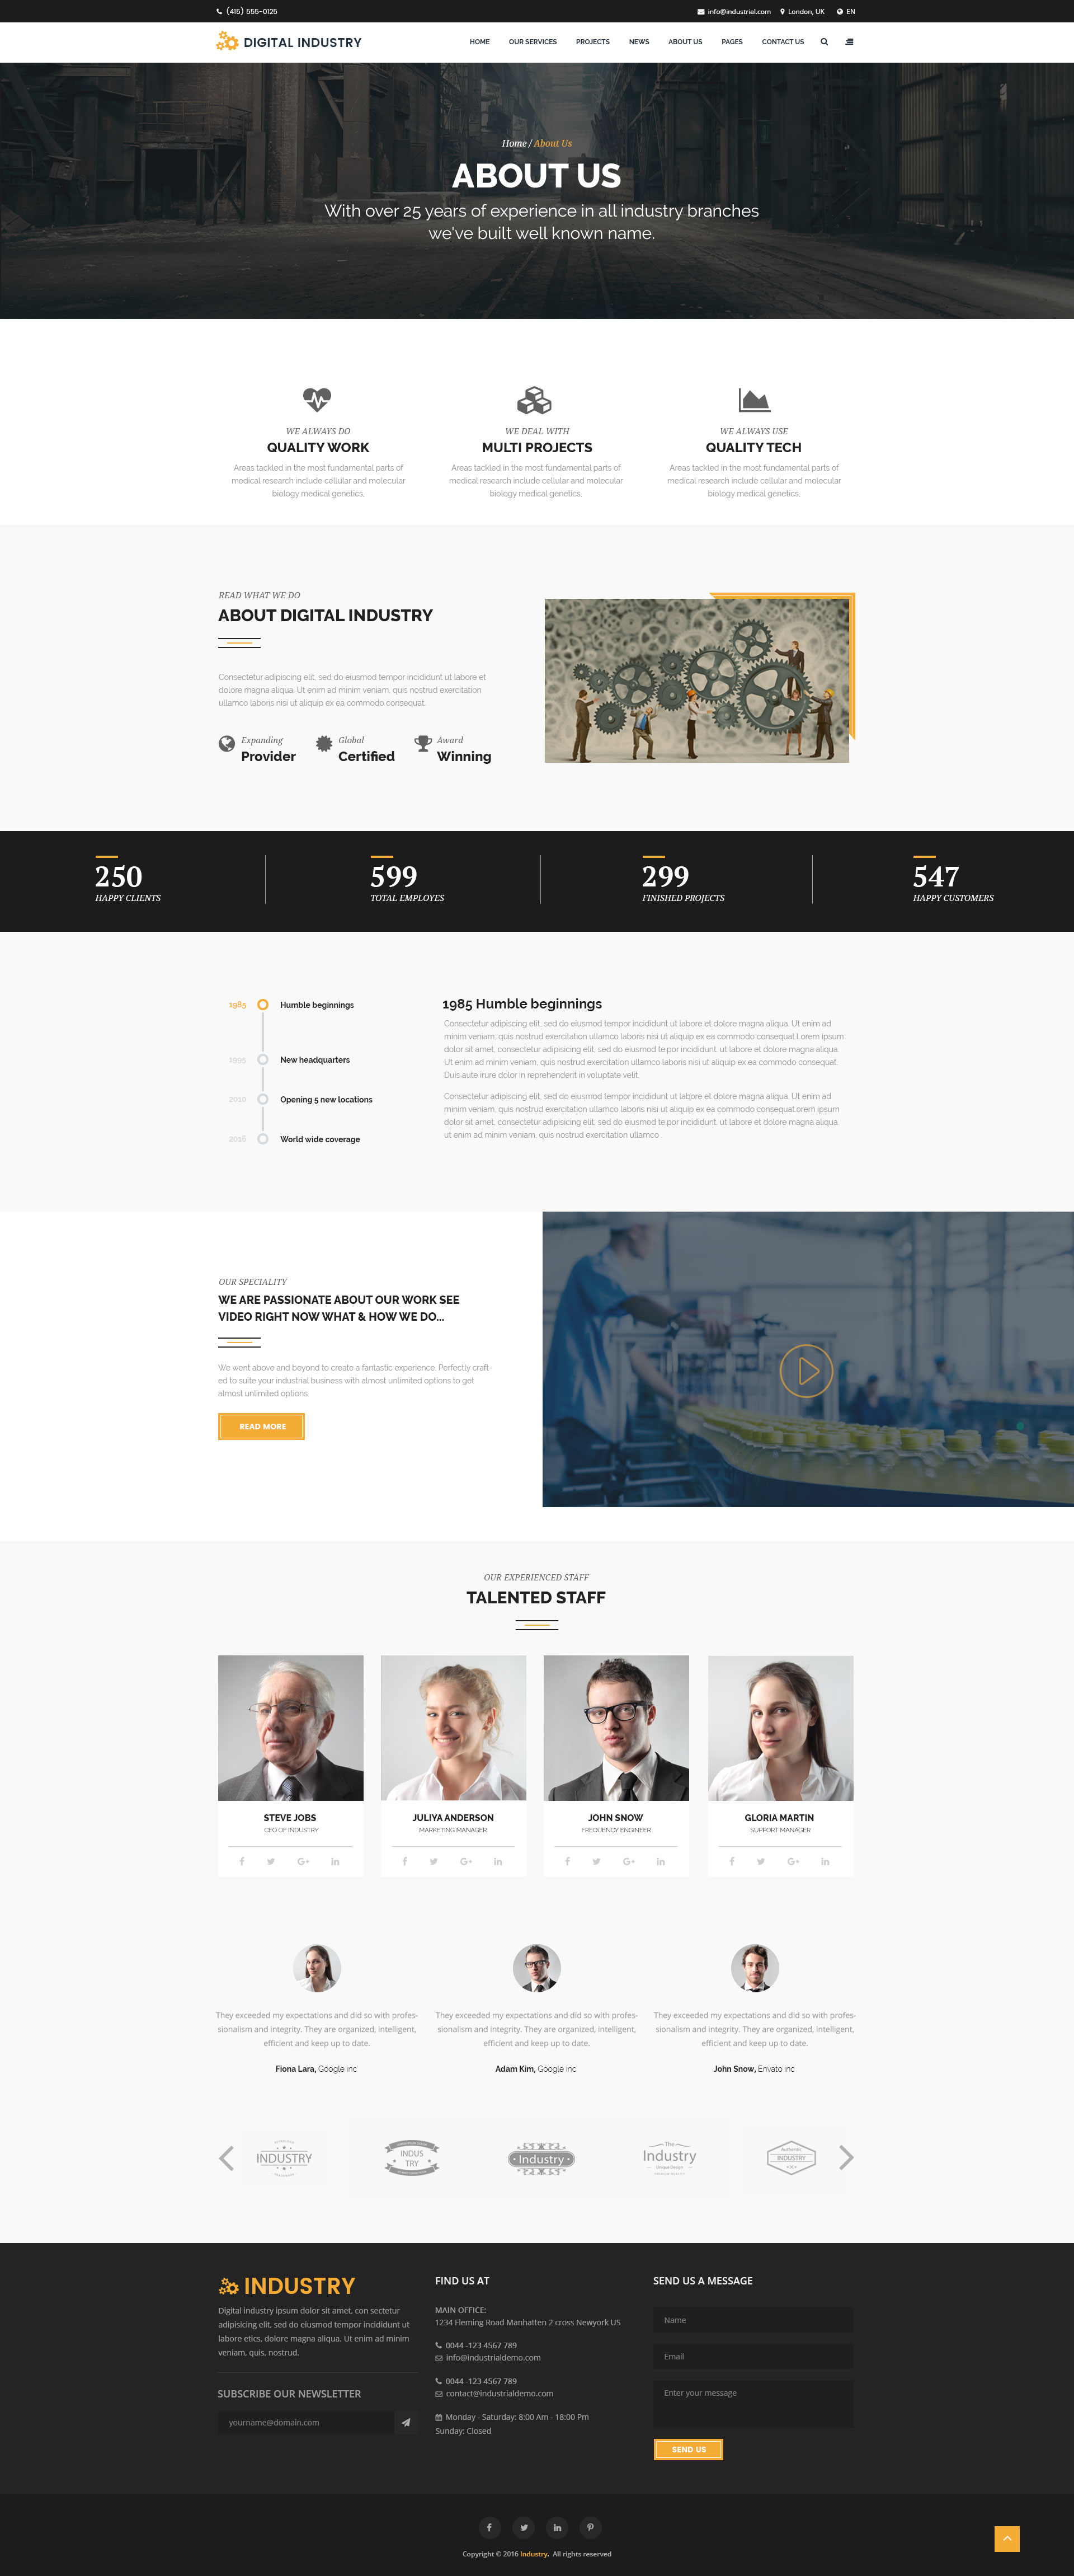 Google themes over the years - Theme Preview 01 Theme Preview Jpg Theme Preview 02_industry_home Jpg